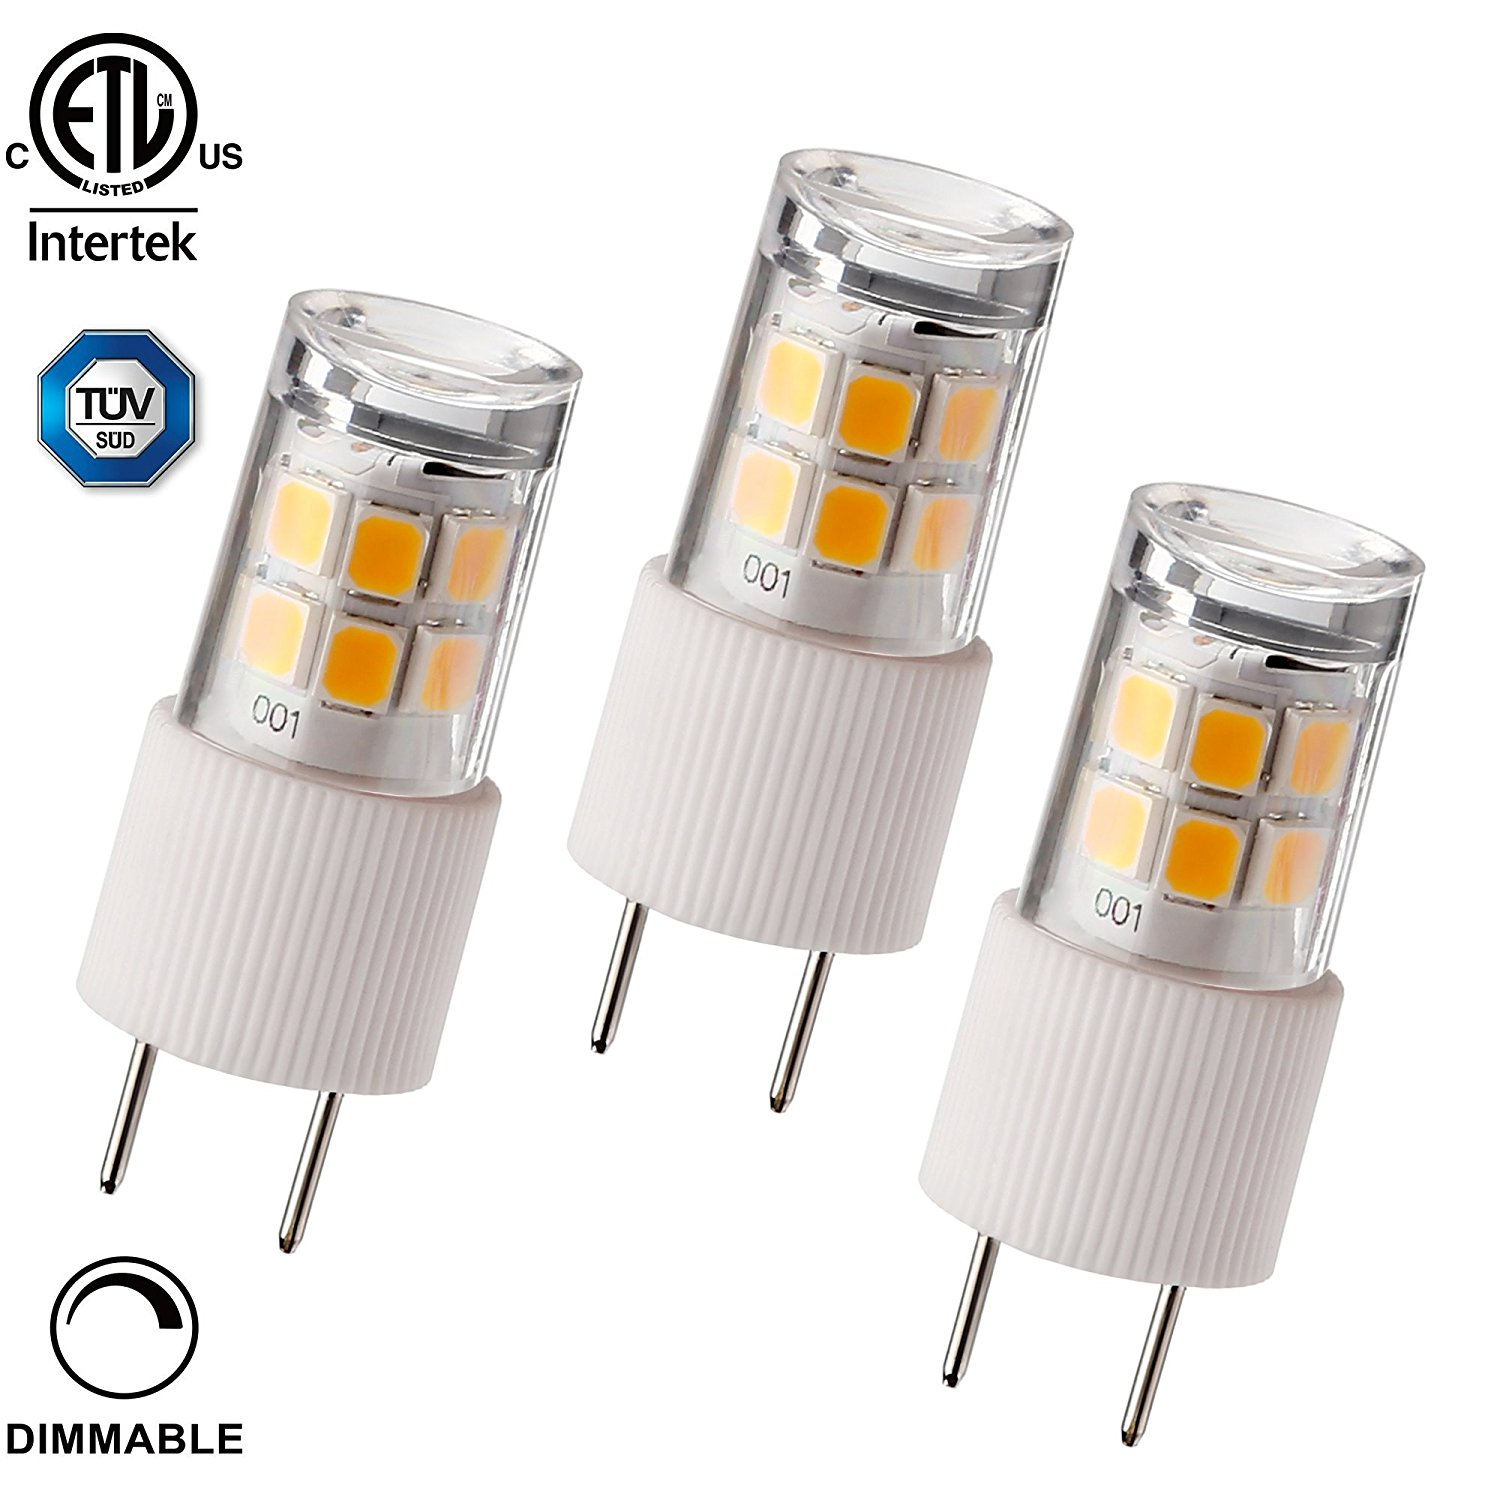 3 PACK 2.3W T4 G8 LED Light Bulb, 30W Bi-Pin Xenon JCD Type Halogen Replacement, 2700K Soft White, 270Lm, Puck Light, Under Cabinet Light, Desk Lamps, 100-130V